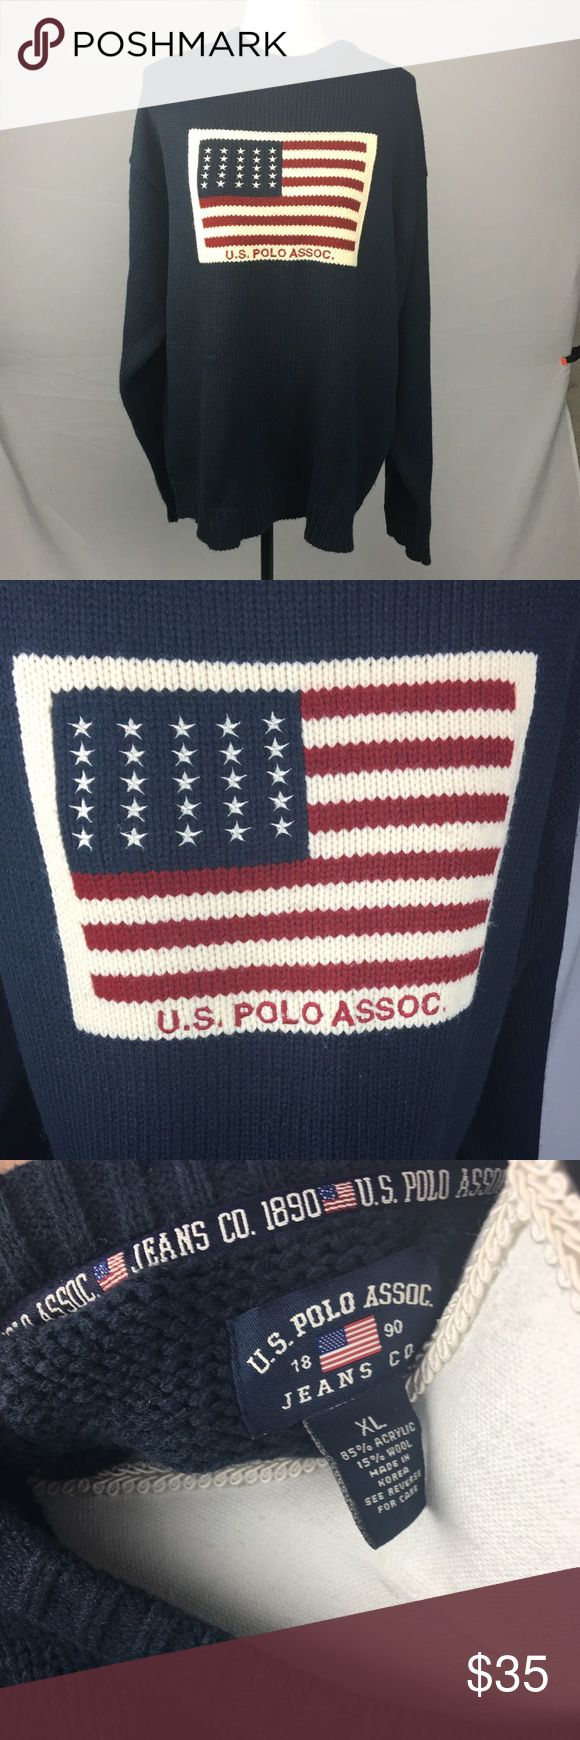 U.S. Polo Assoc. American Flag Sweater Great American pride sweater! This is a size XL. Show your Americana pride with this one!  This item has been inspected to signs of wear. Any signs of wear will be documented in the pictures. U.S. Polo Assn. Sweaters Crewneck